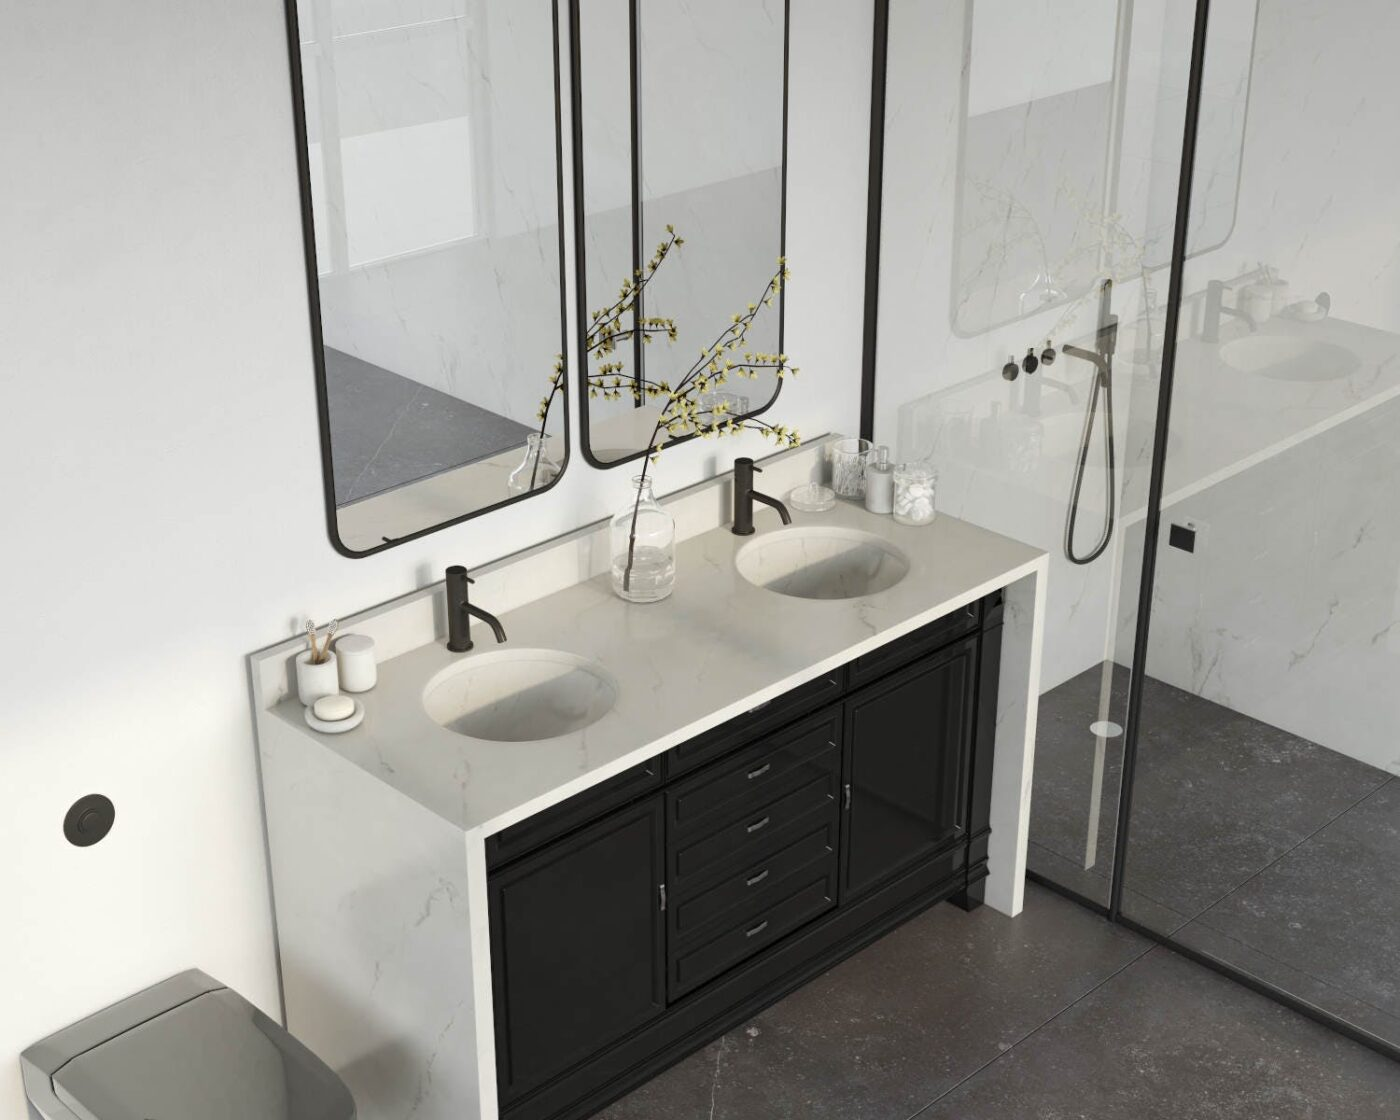 Image of Tundra 19 Bathroom.RGB color 1 in Small bathrooms: the great secrets of their design - Cosentino